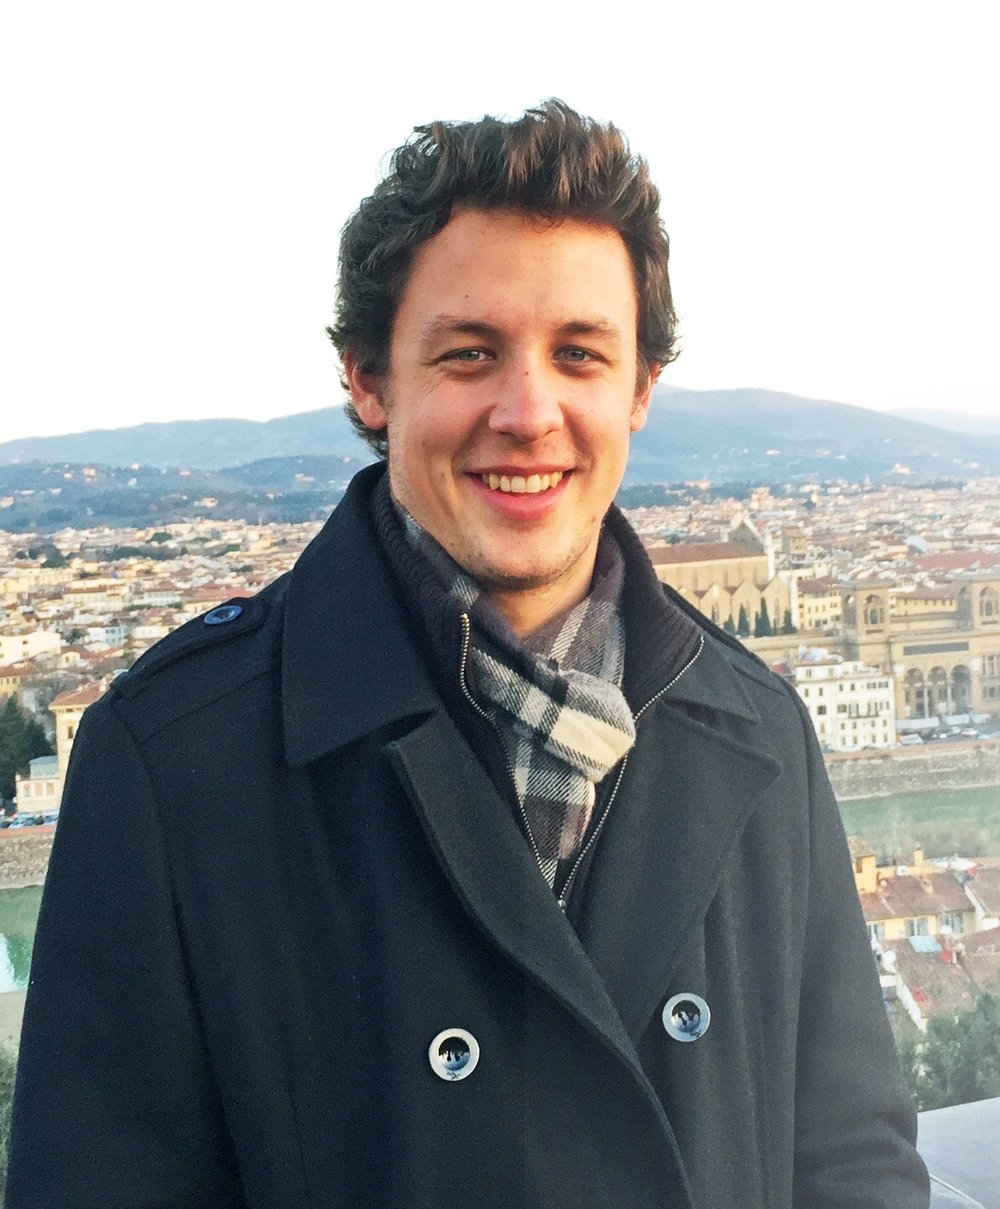 luke firenze portrait small.jpg